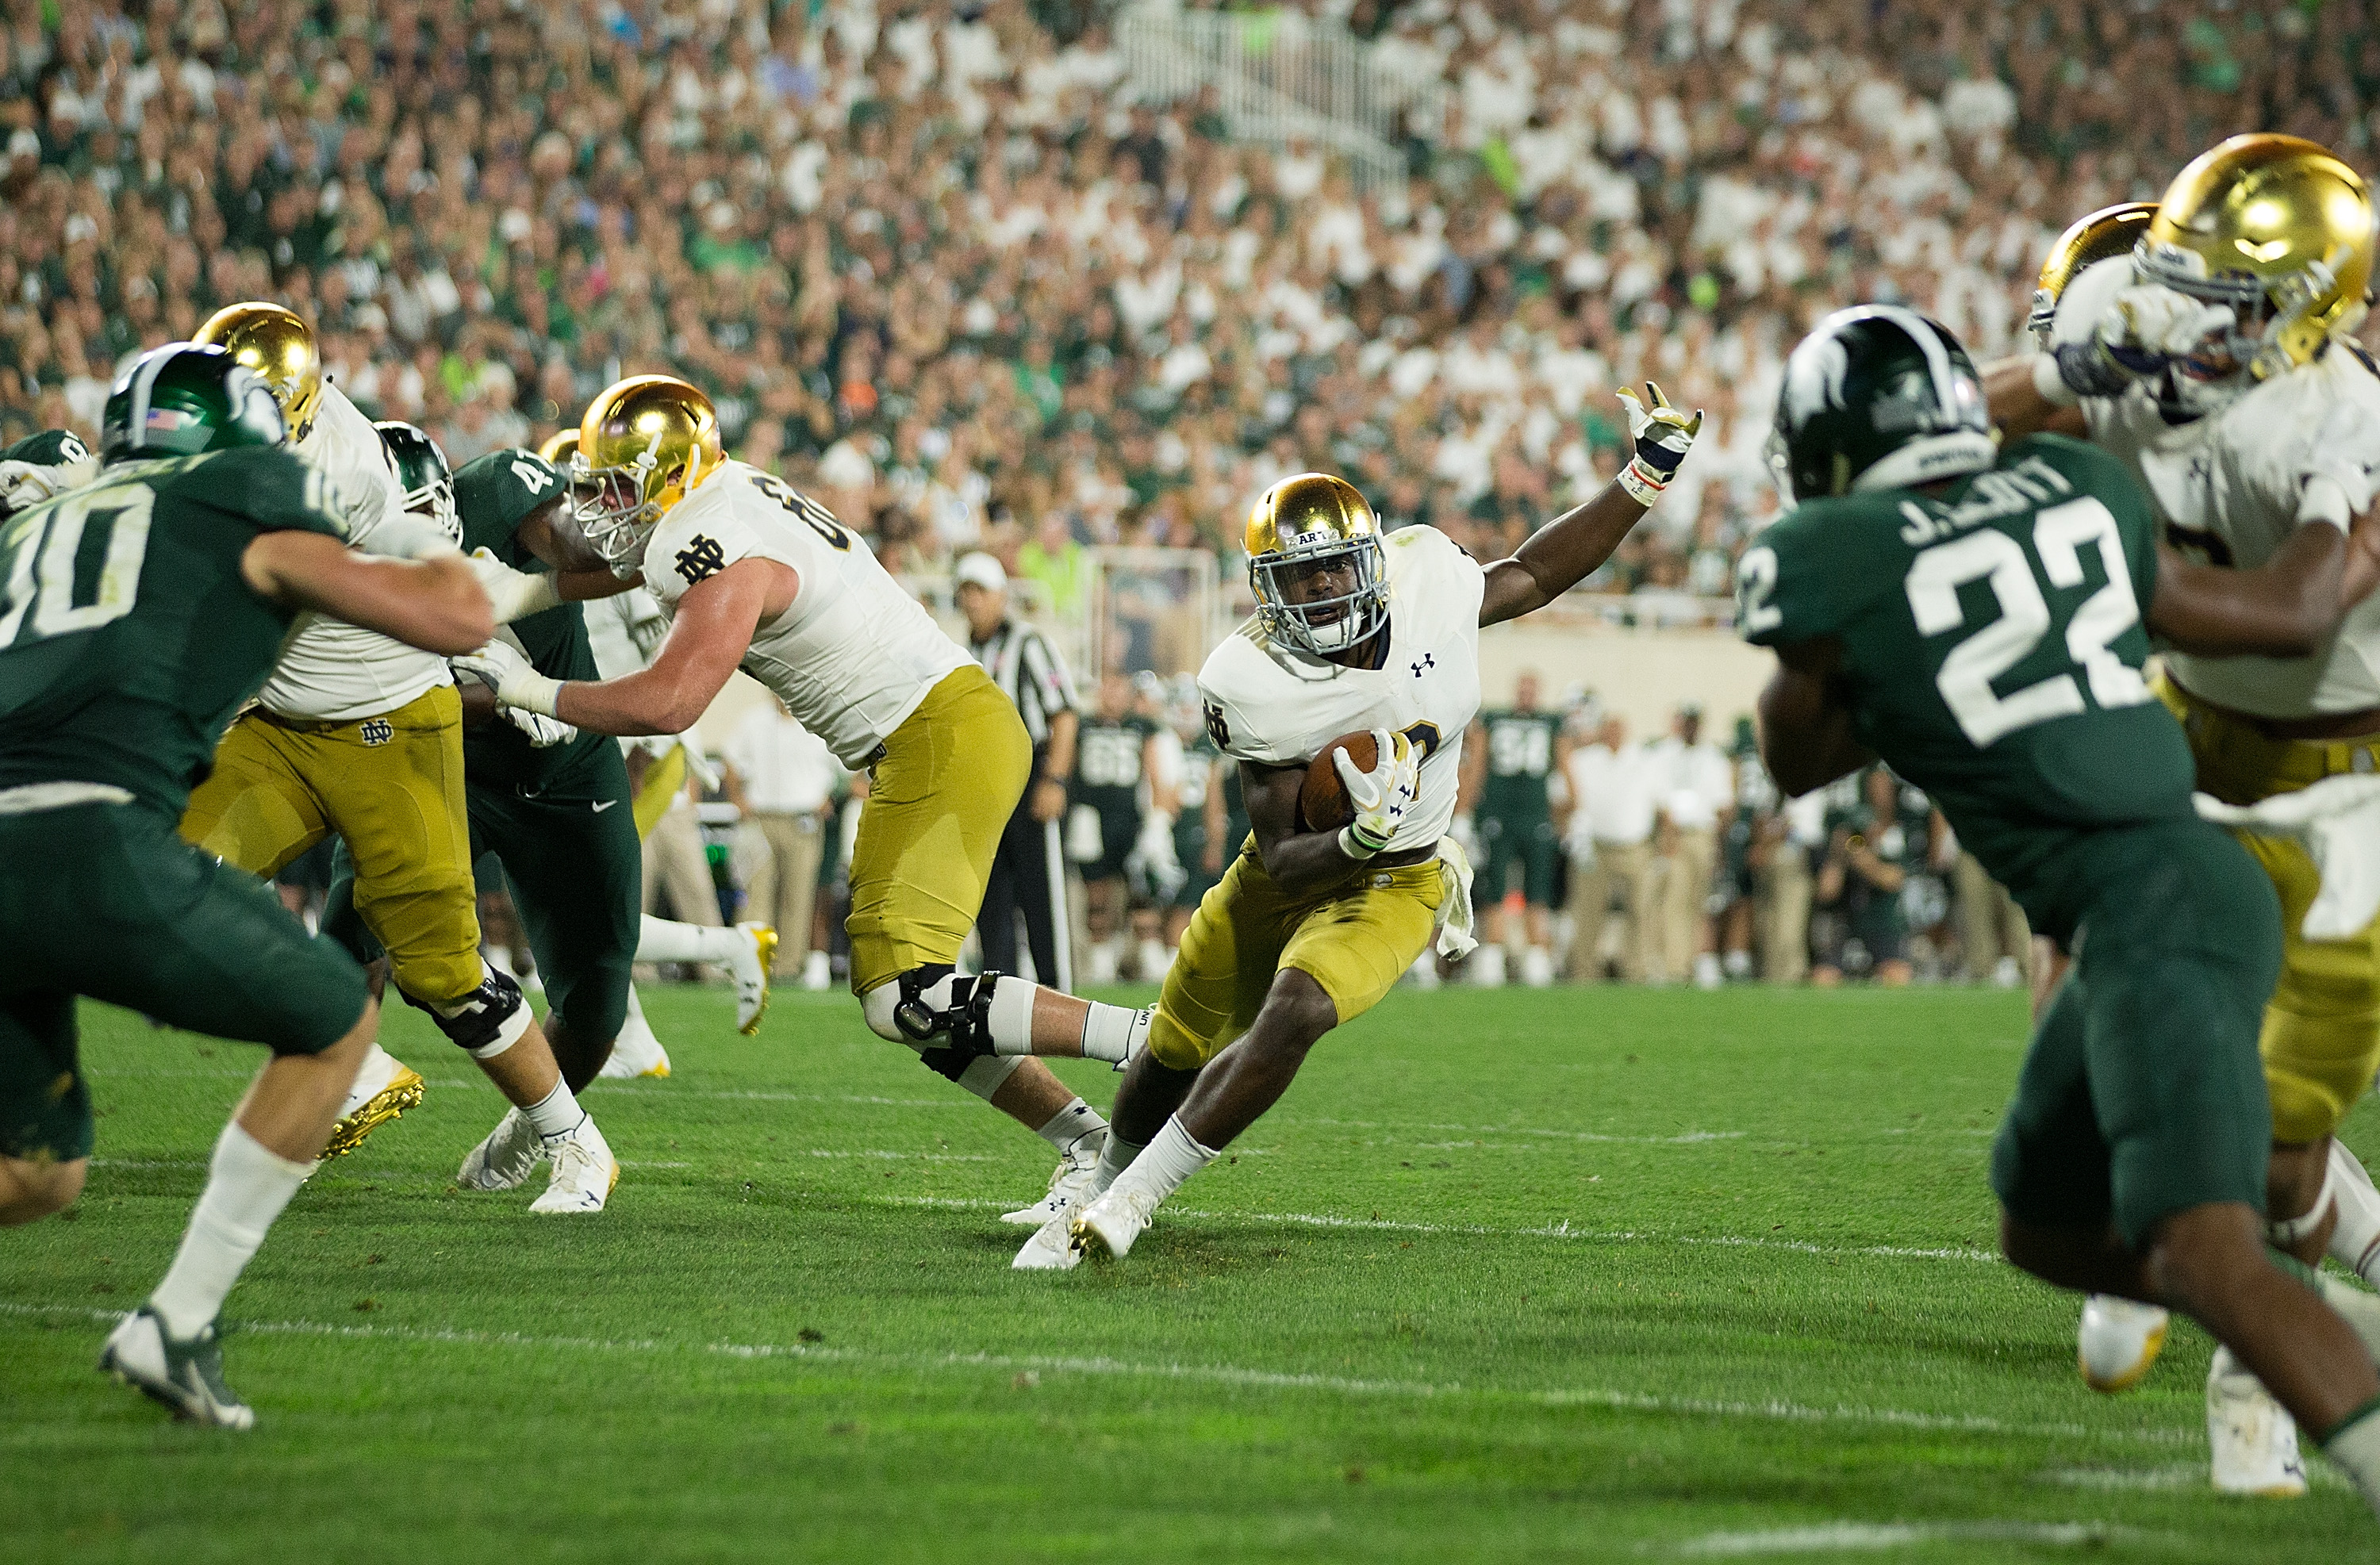 Notre Dame Football Is Dexter Williams The Next Great Irish Running Back